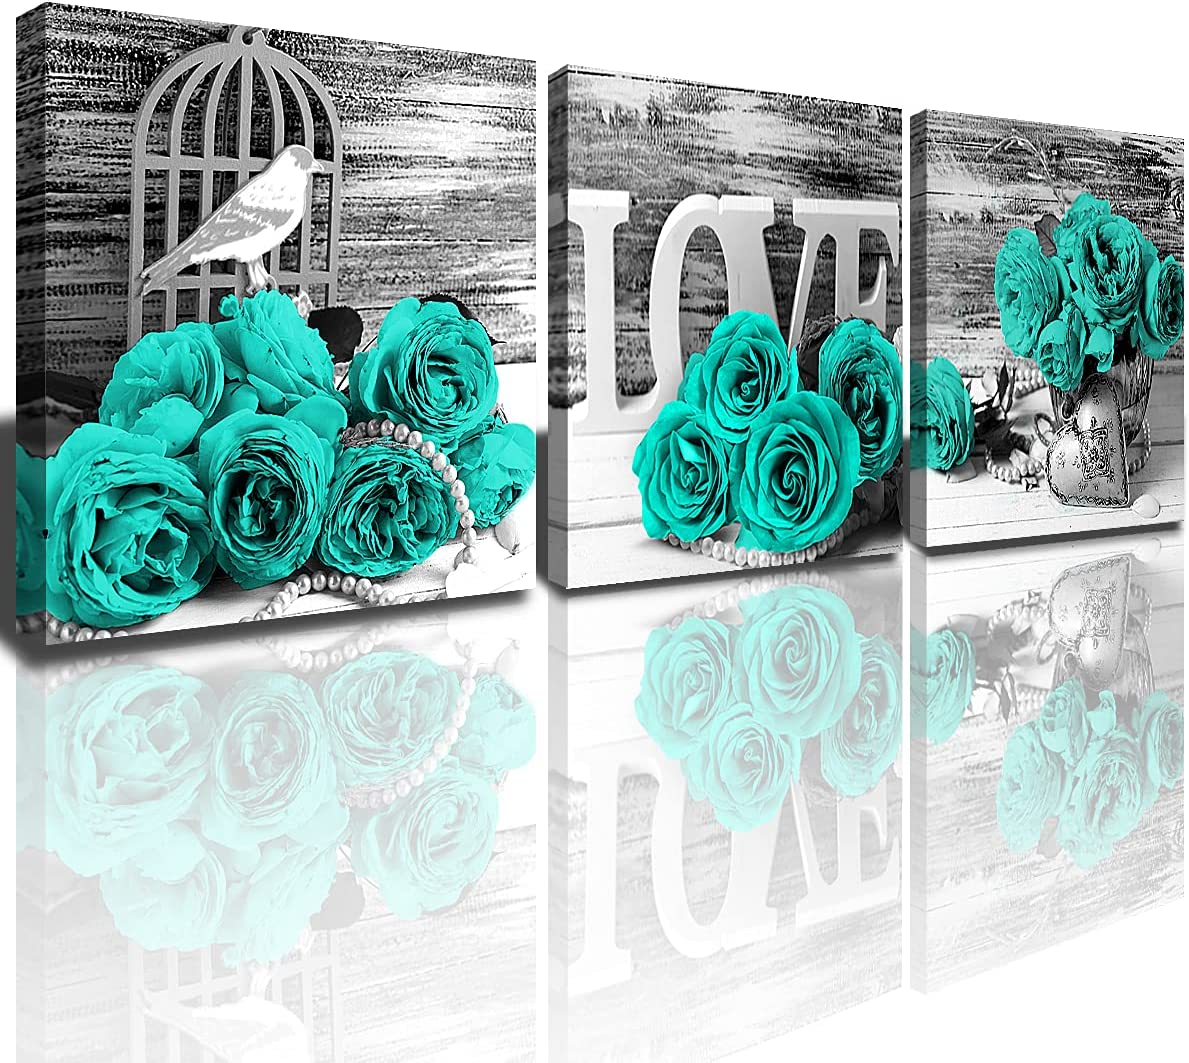 Amazon Com Bedroom Wall Decor Turquoise House Bathroom Canvas Prints Art Painting For Living Room 3 Pcs Sets Teal Rose Pictures Black And White Flower Kitchen Accessories Home Decoration 12x12 Everything